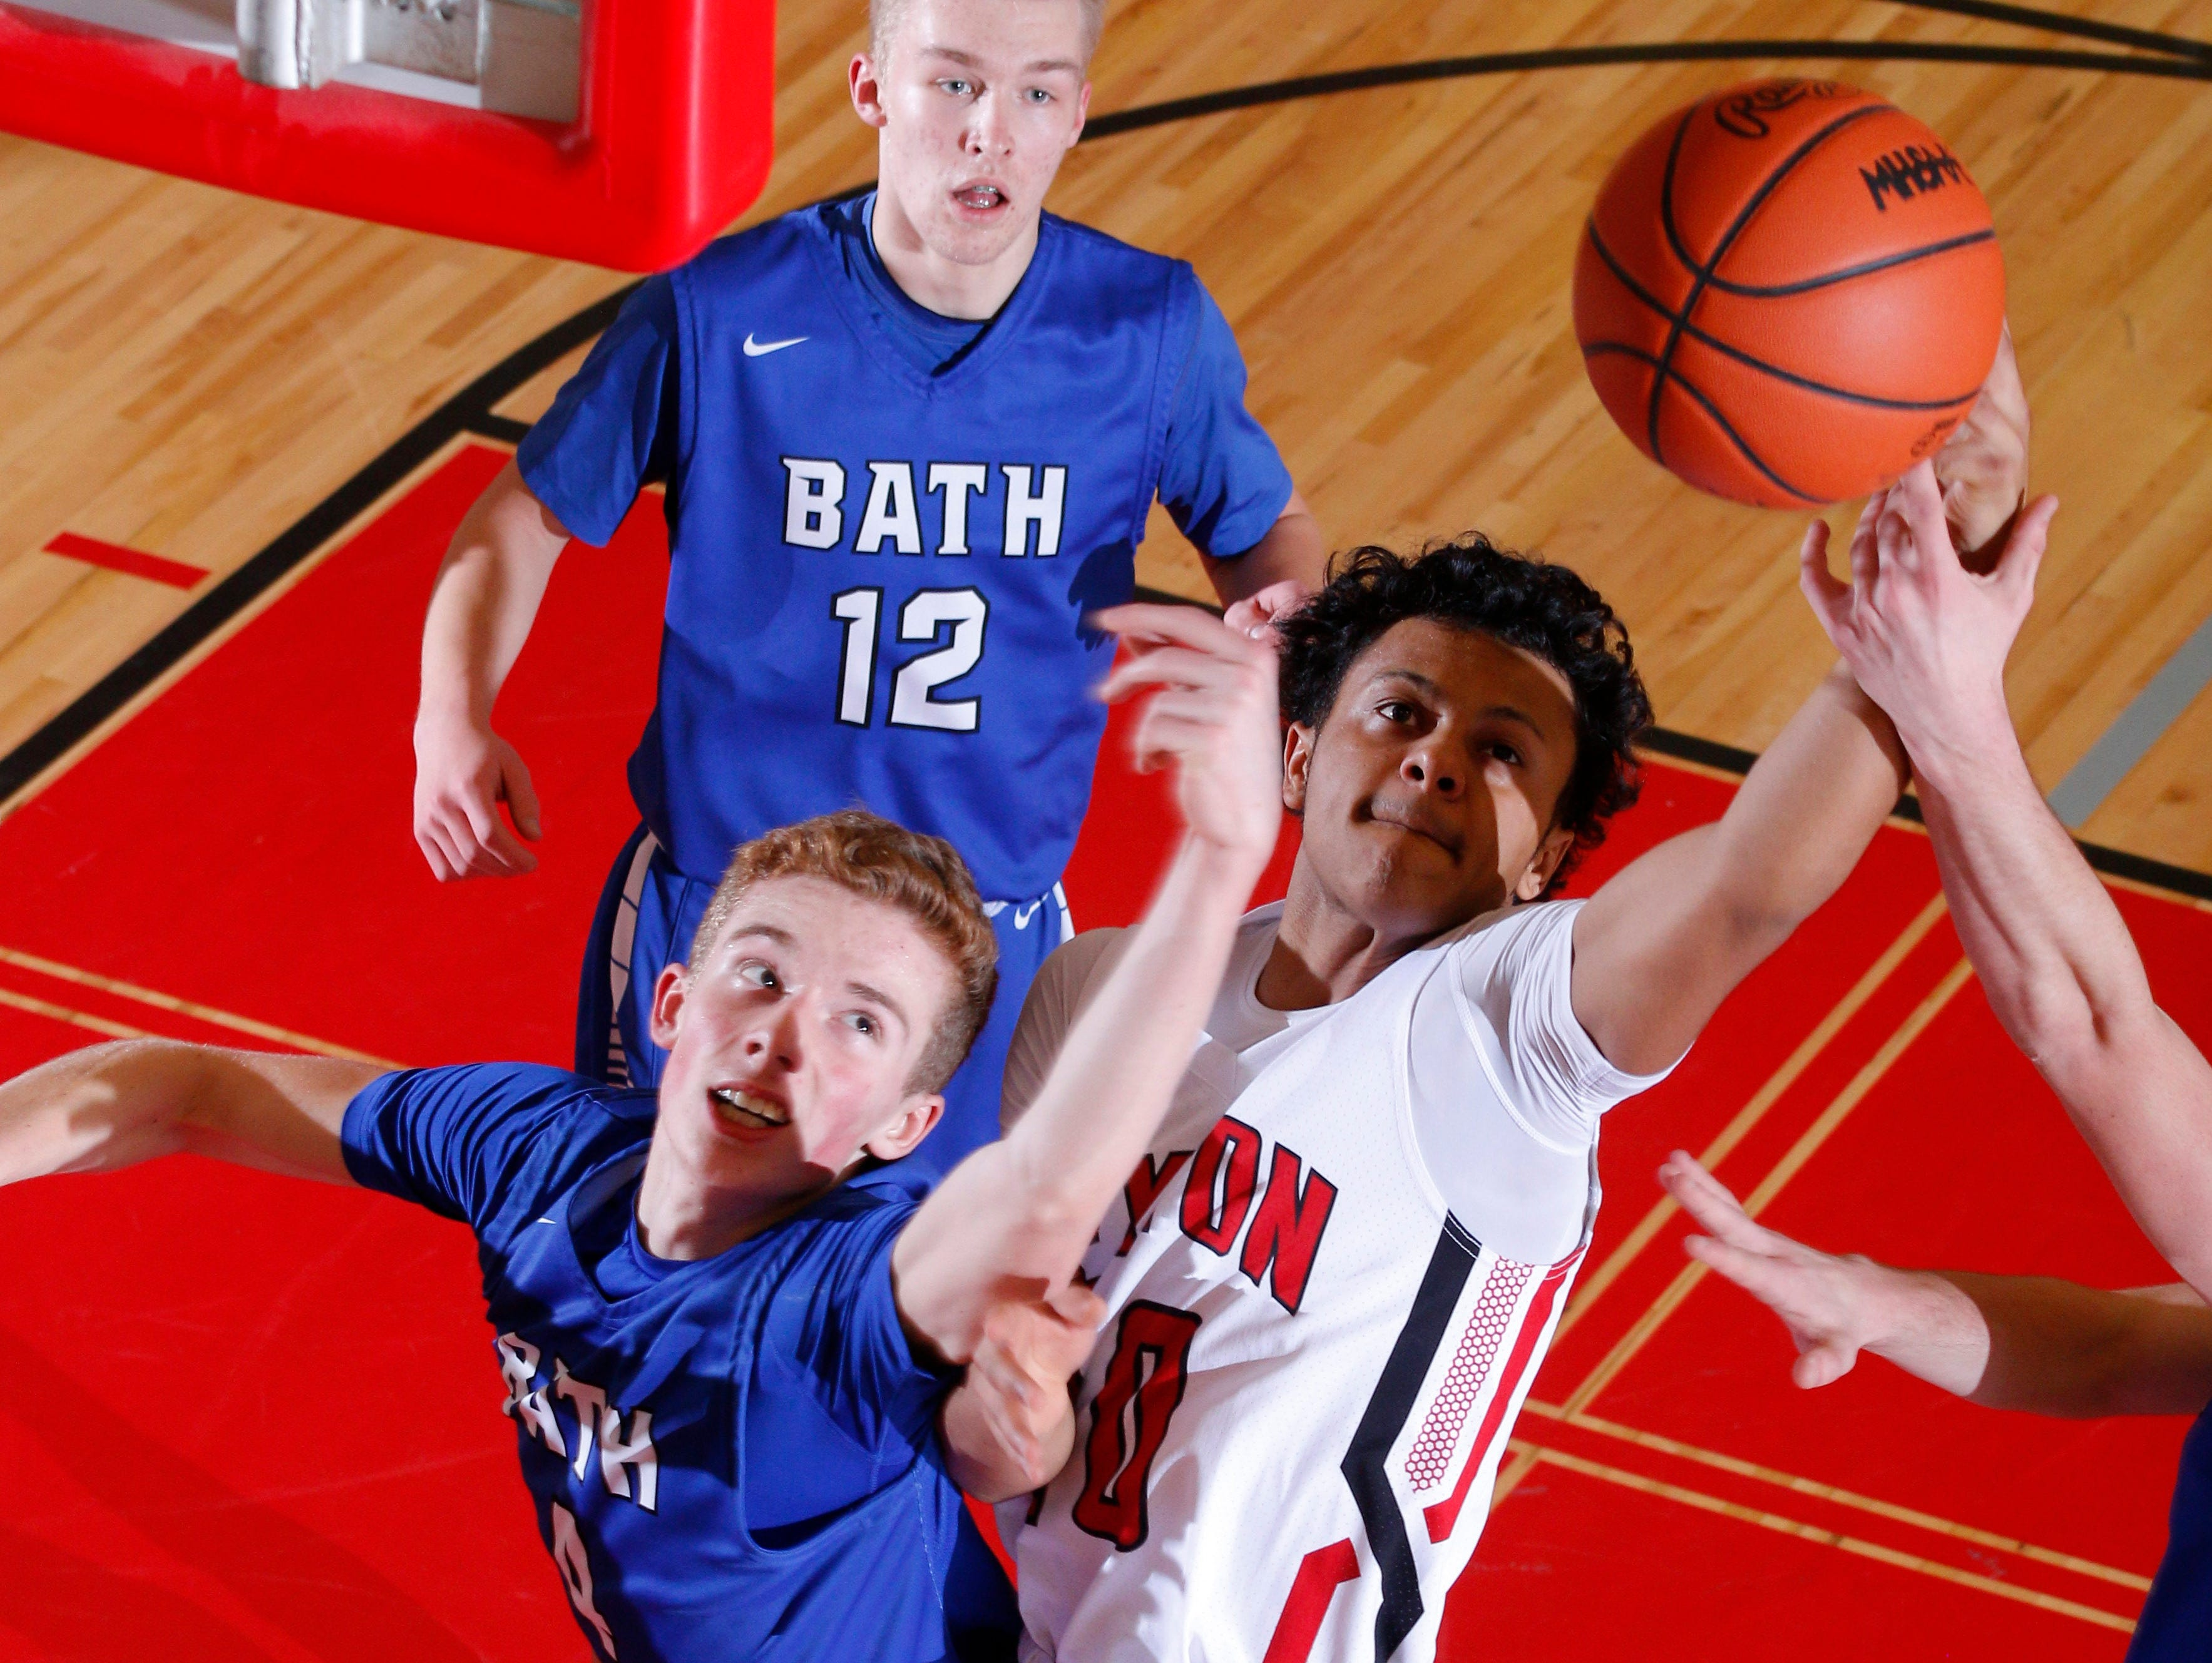 Sexton's Brandon Powers, right, and Bath's Jakob Cain reach for a rebound Tuesday, Feb. 7, 2017, in Lansing, Mich. Sexton won 82-39.